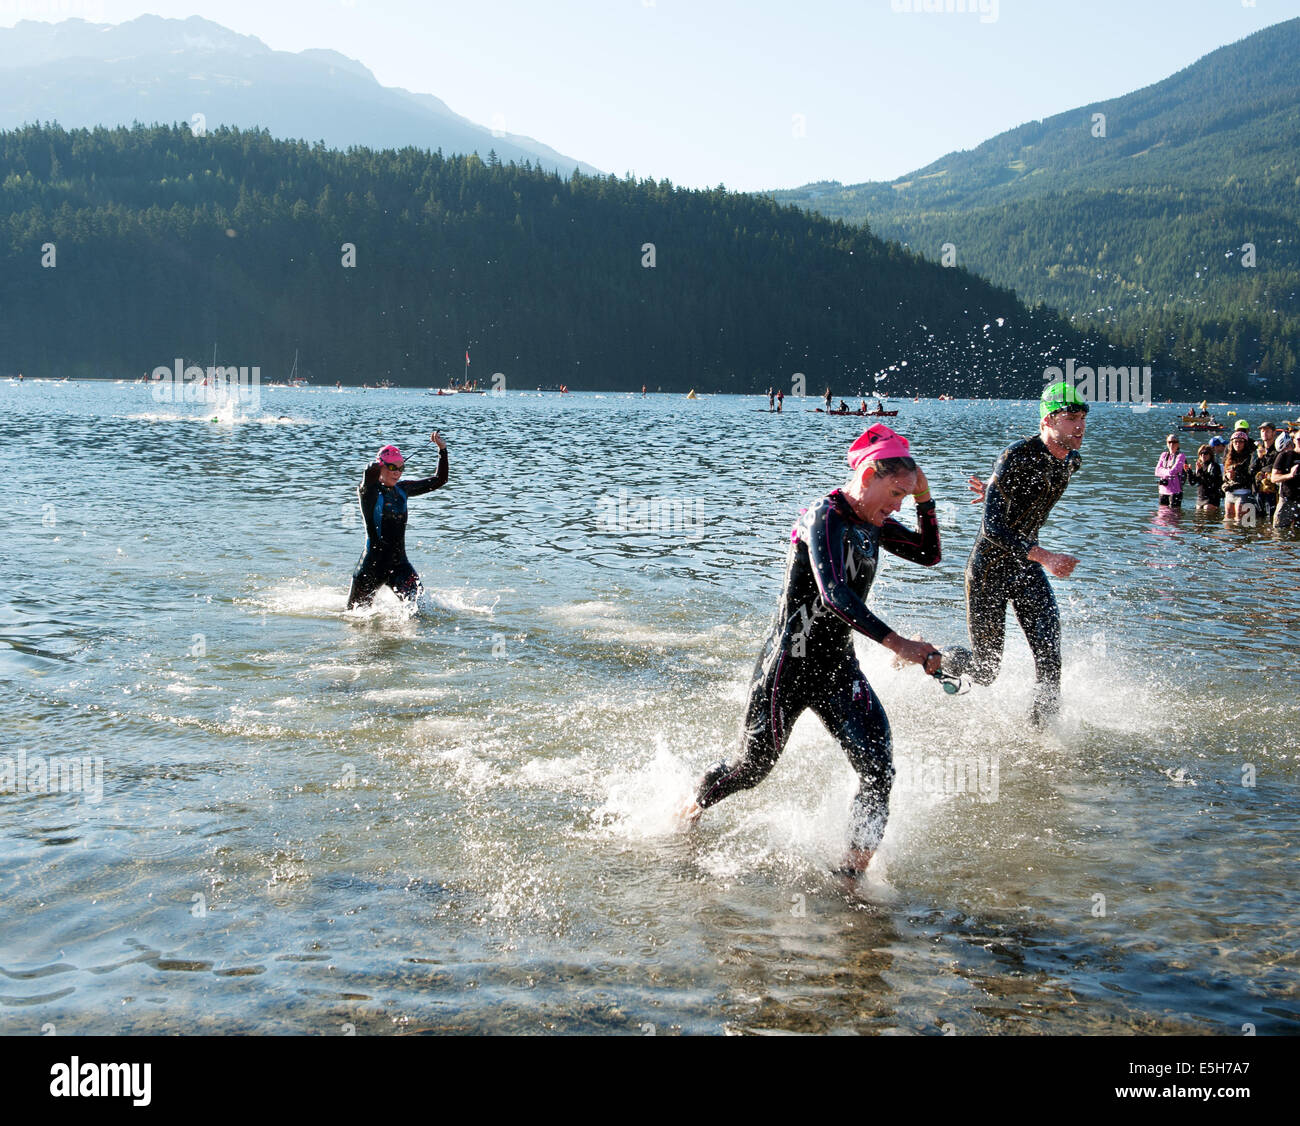 Ironman swimmers emerge from Alta lake at the end of the swim section  2014 Canadian Ironman.  Whistler BC, Canada. - Stock Image